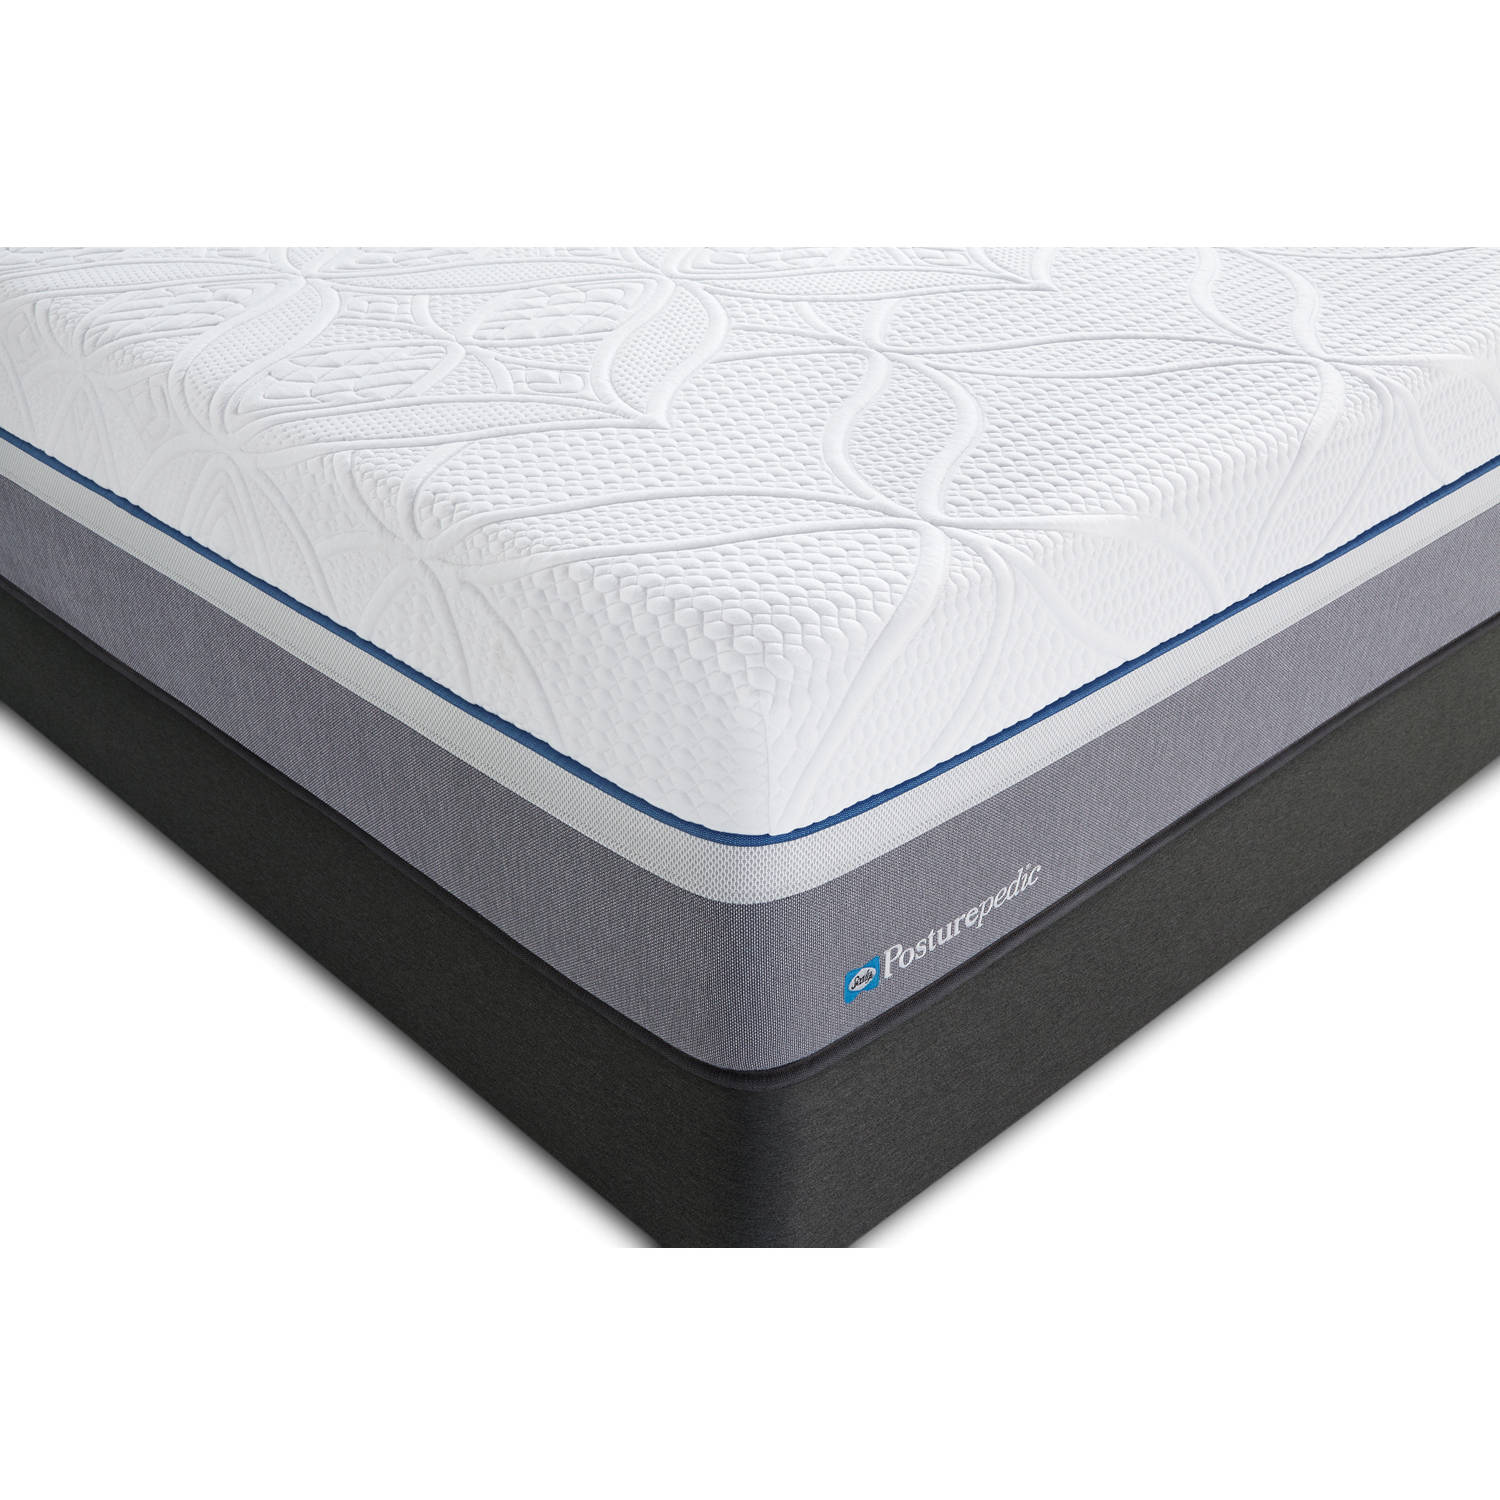 hybird design idlesleep hybrid mattress idle review latex sided inches sleep